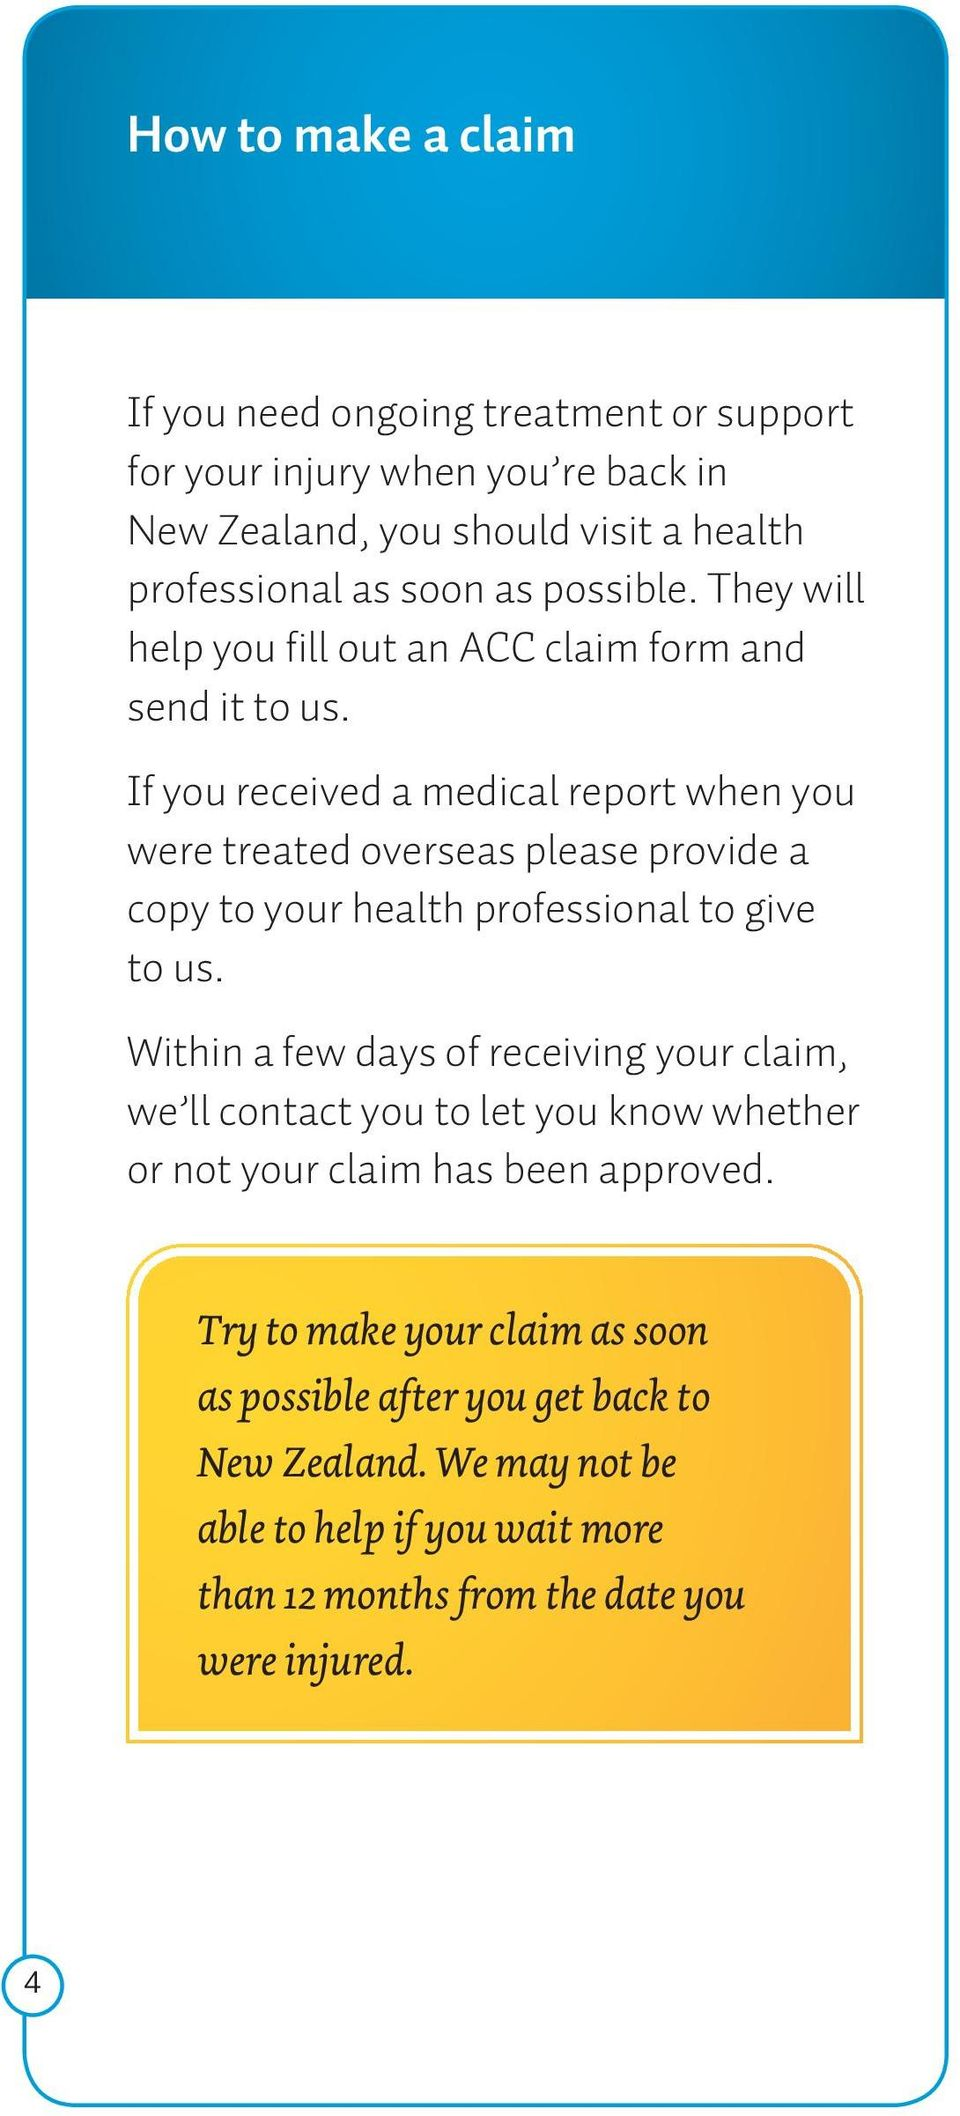 If you received a medical report when you were treated overseas please provide a copy to your health professional to give to us.